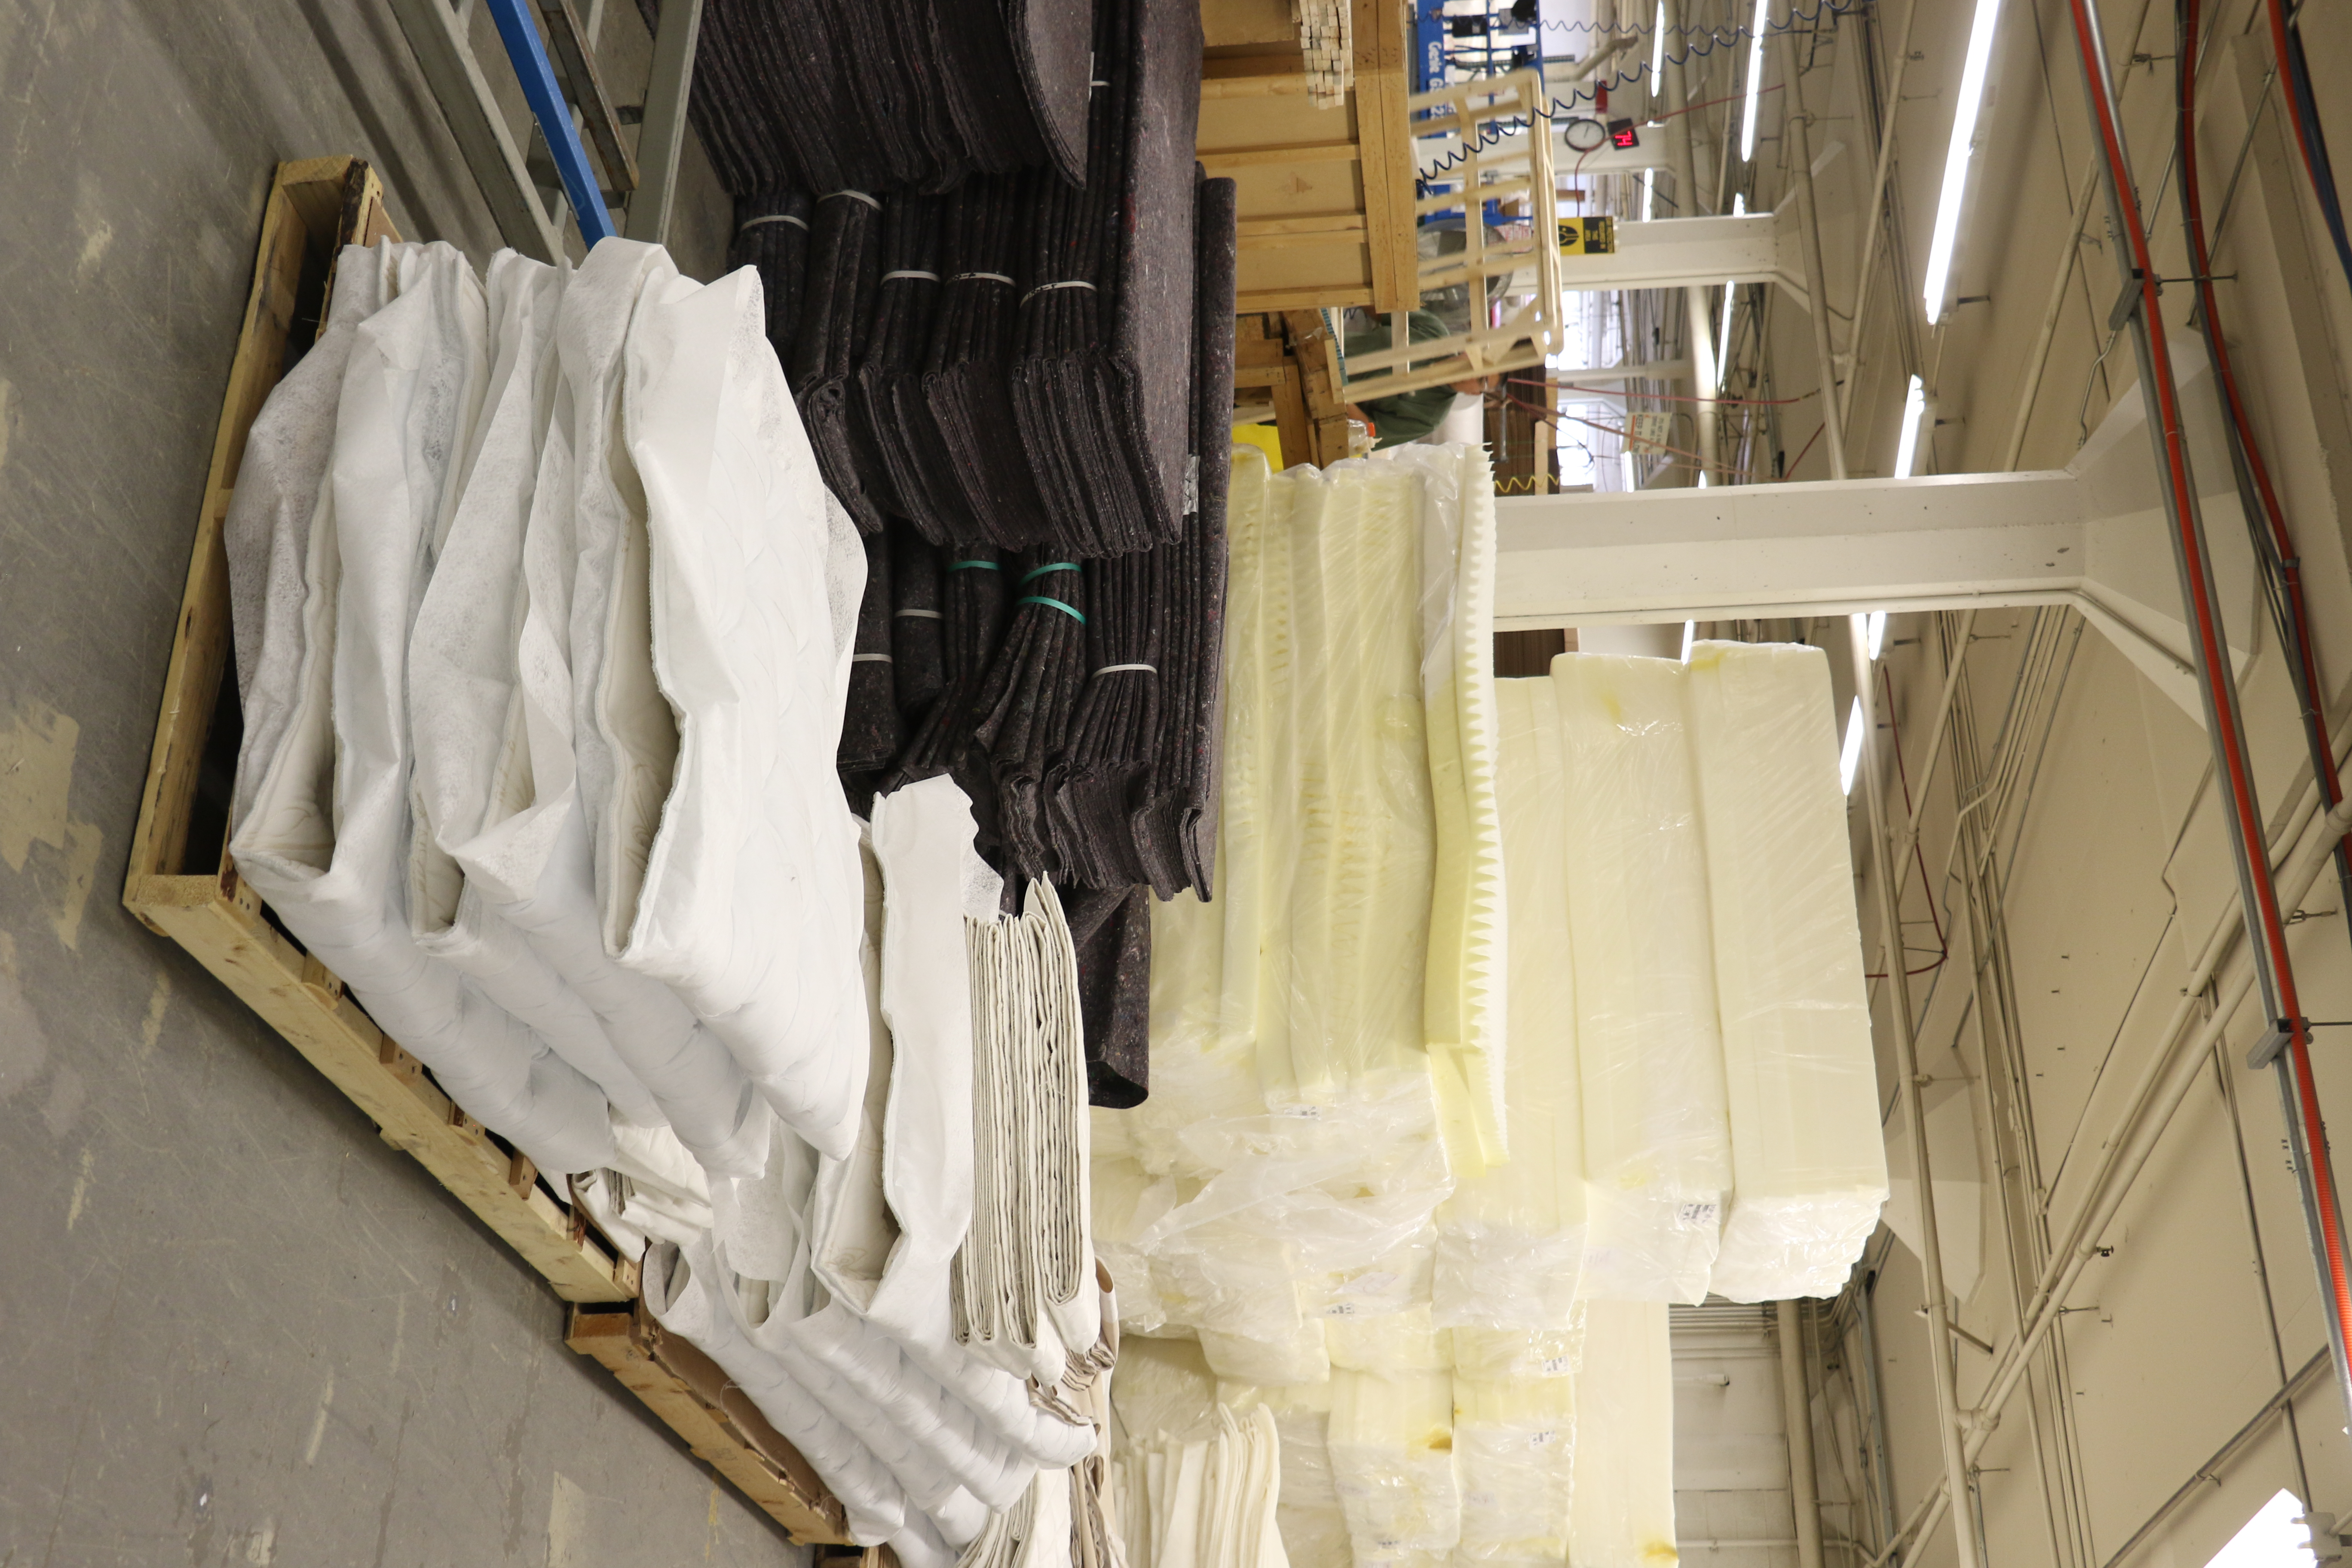 The Deseret Manufacturing facility in Salt Lake City makes mattresses, furniture and other commodities to be sold at the Deseret Industries.